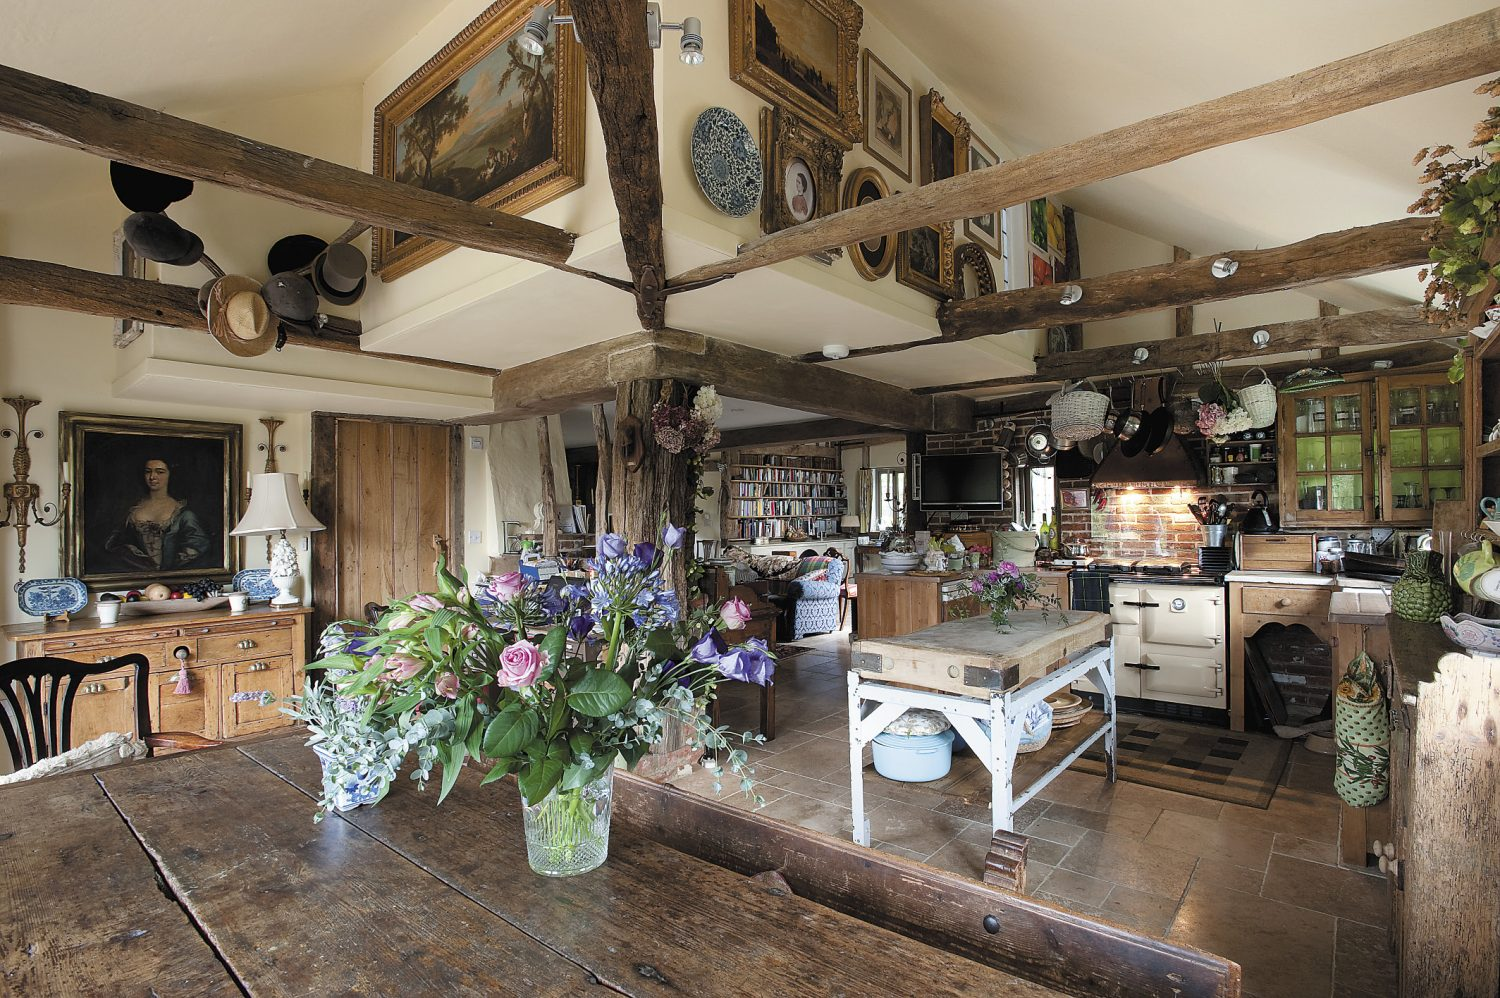 the kitchen has been created from both space which was part of the main barn and from an area which was once little more than a corrugated iron outshot tacked onto the side of the main structure